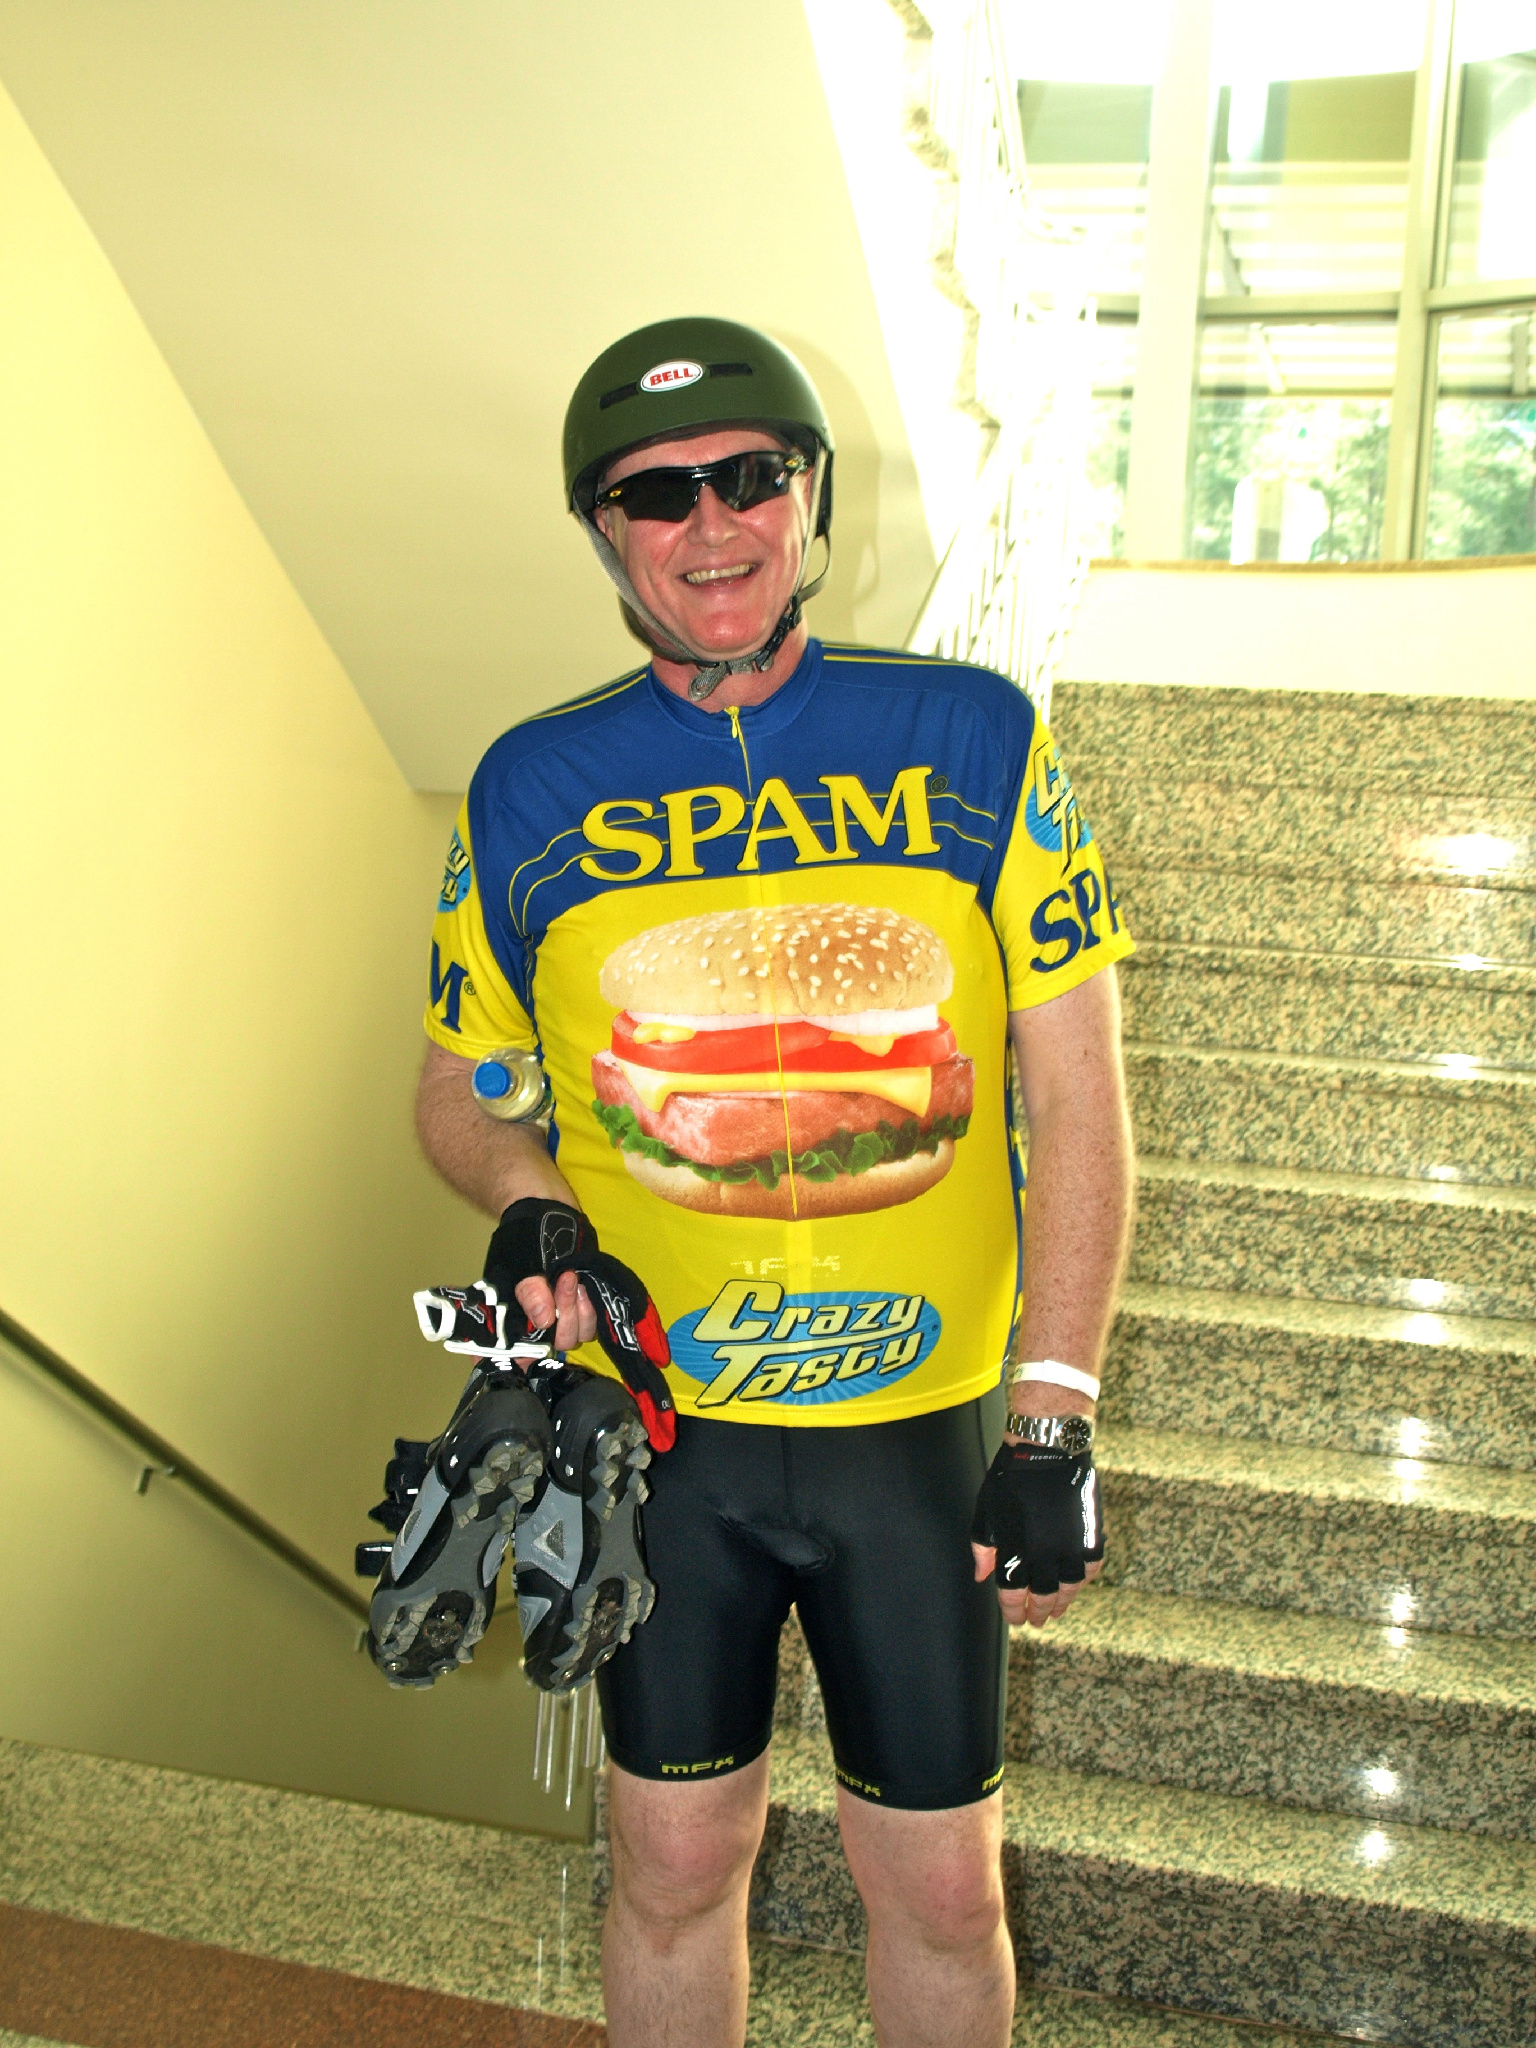 Carlton Kirby On Twitter SPAM Crazy Tasty The Ultimate Jersey For The Larger Rider Httpt